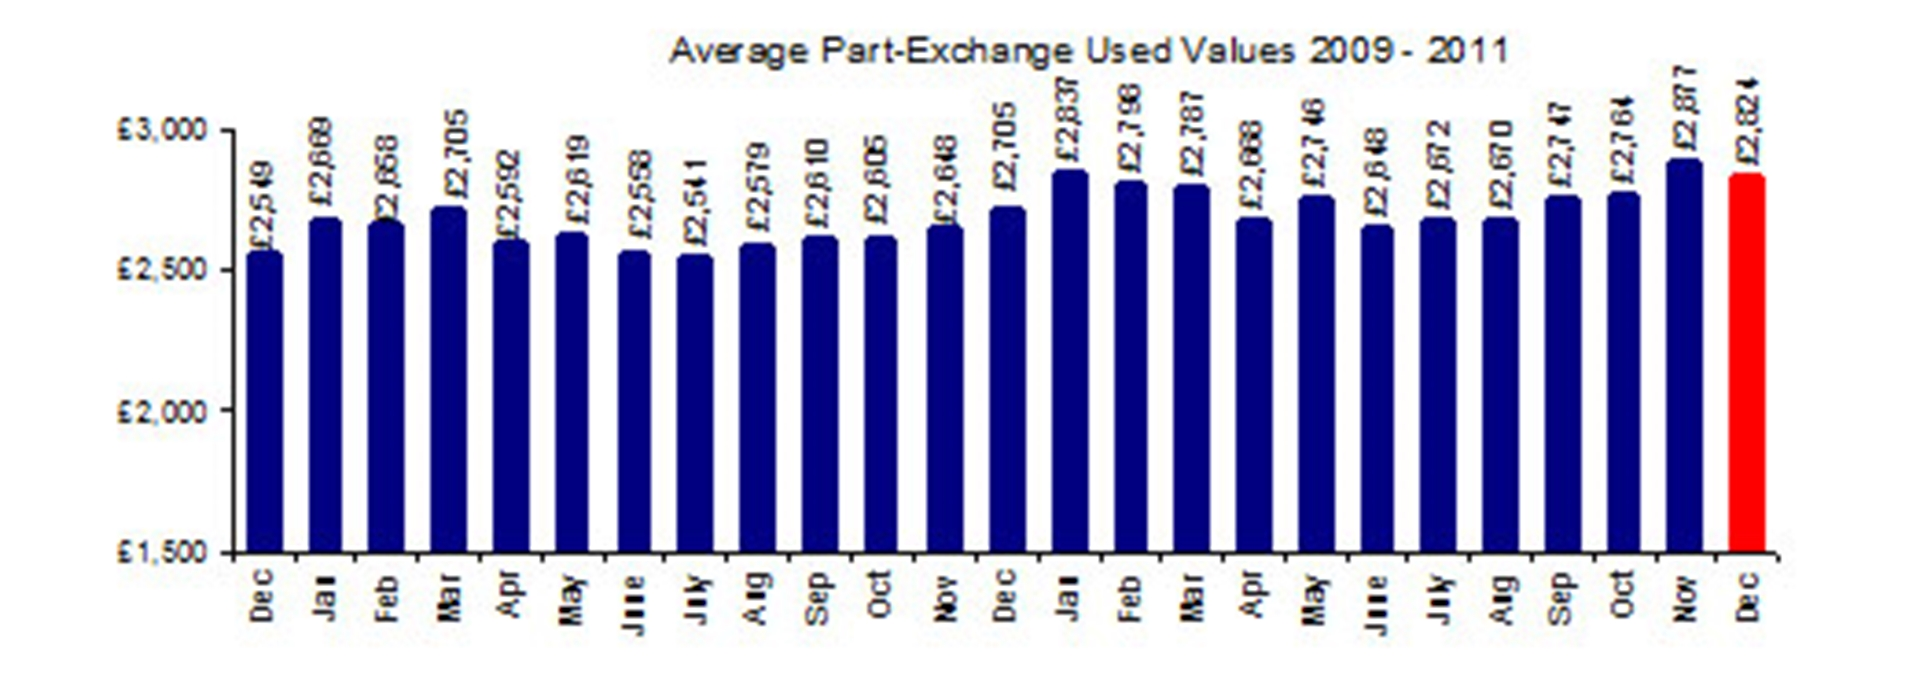 The part-exchange sector